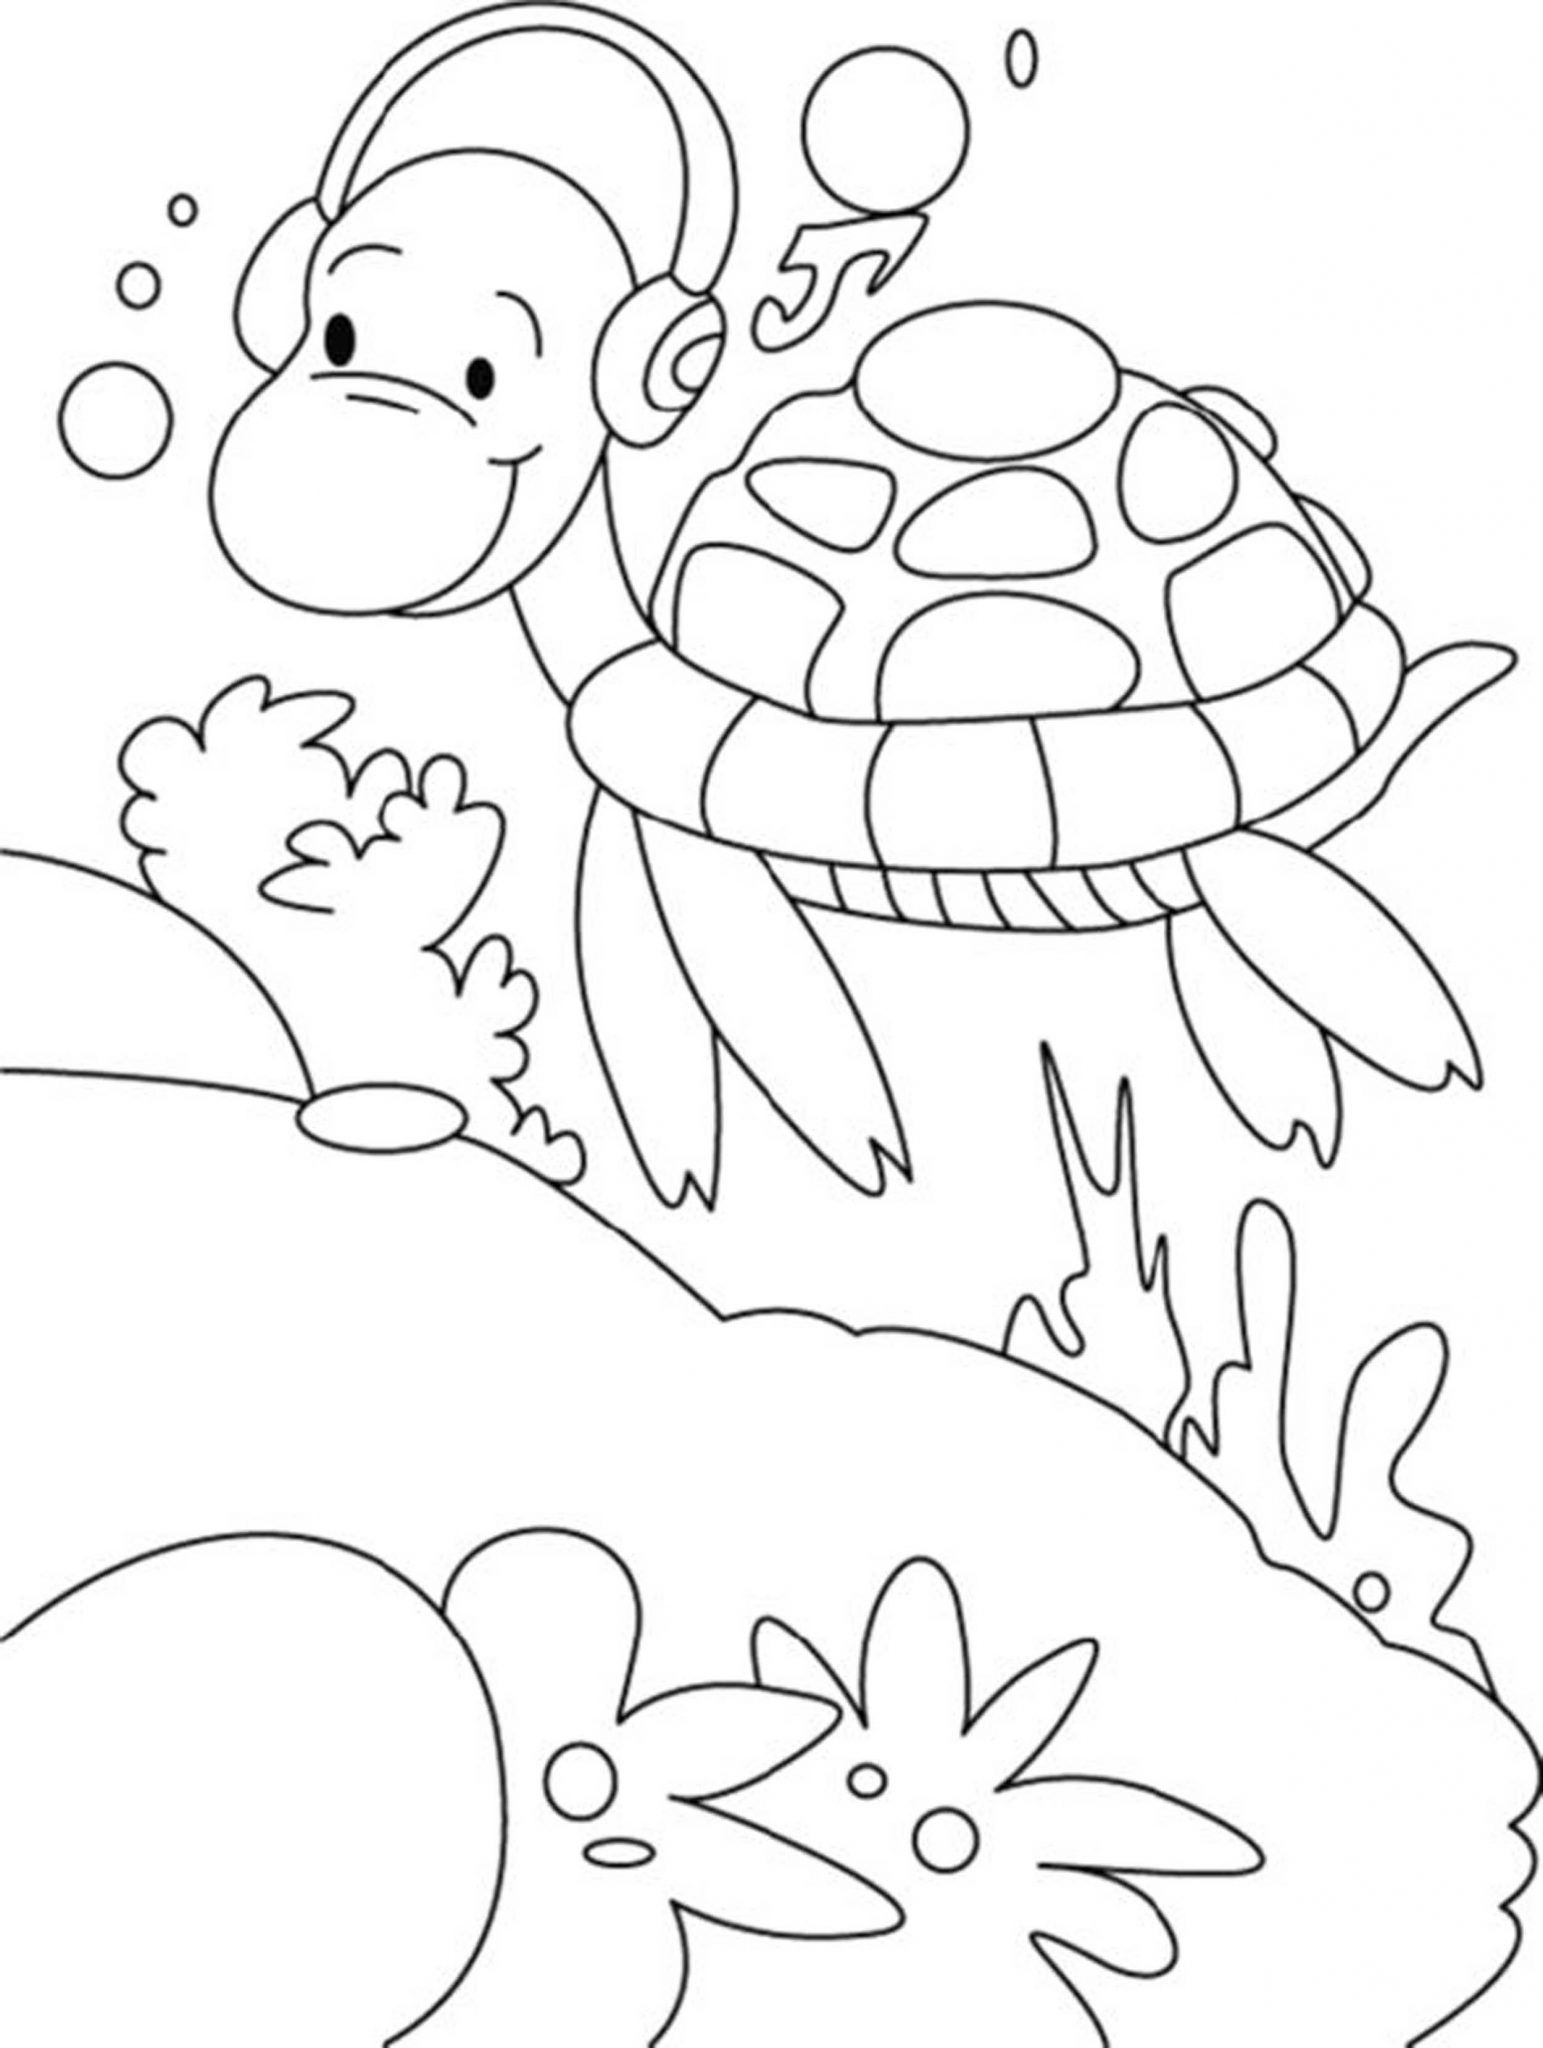 Print & Download - Turtle Coloring Pages as the ...